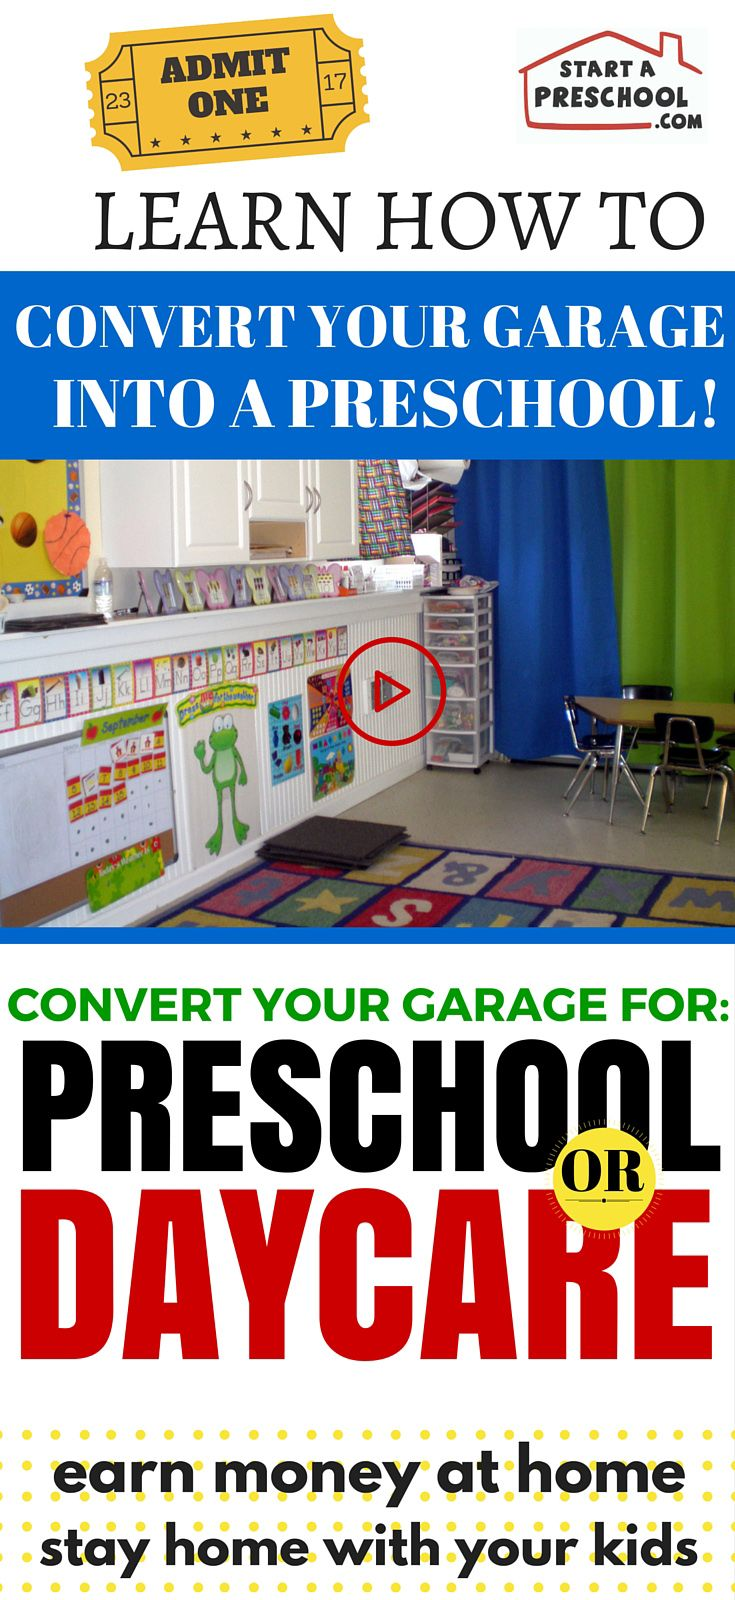 How to convert your garage into a preschool or daycare